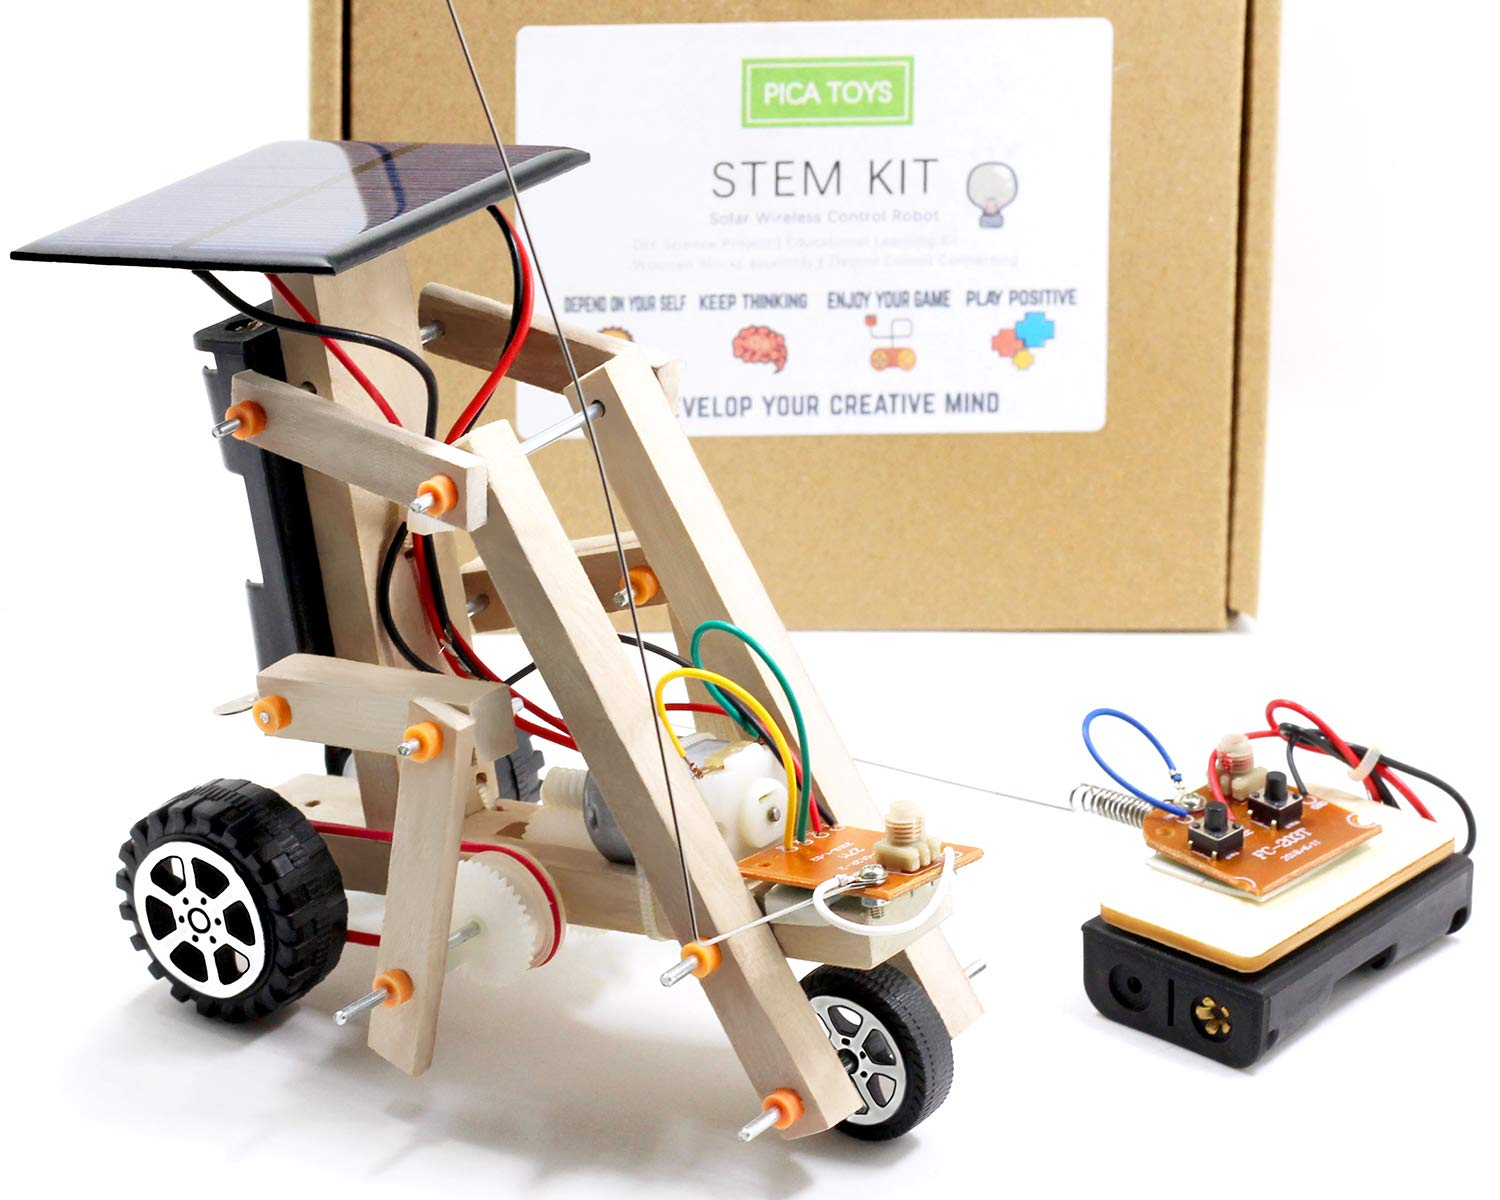 Pica Toys Wooden Solar & Wireless Remote Control Robotics Creative Engineering Circuit Science STEM Building Kit - Dual Powers for Electric Motor - DIY Experiment for Kids, Teens and Adults by Pica Toys